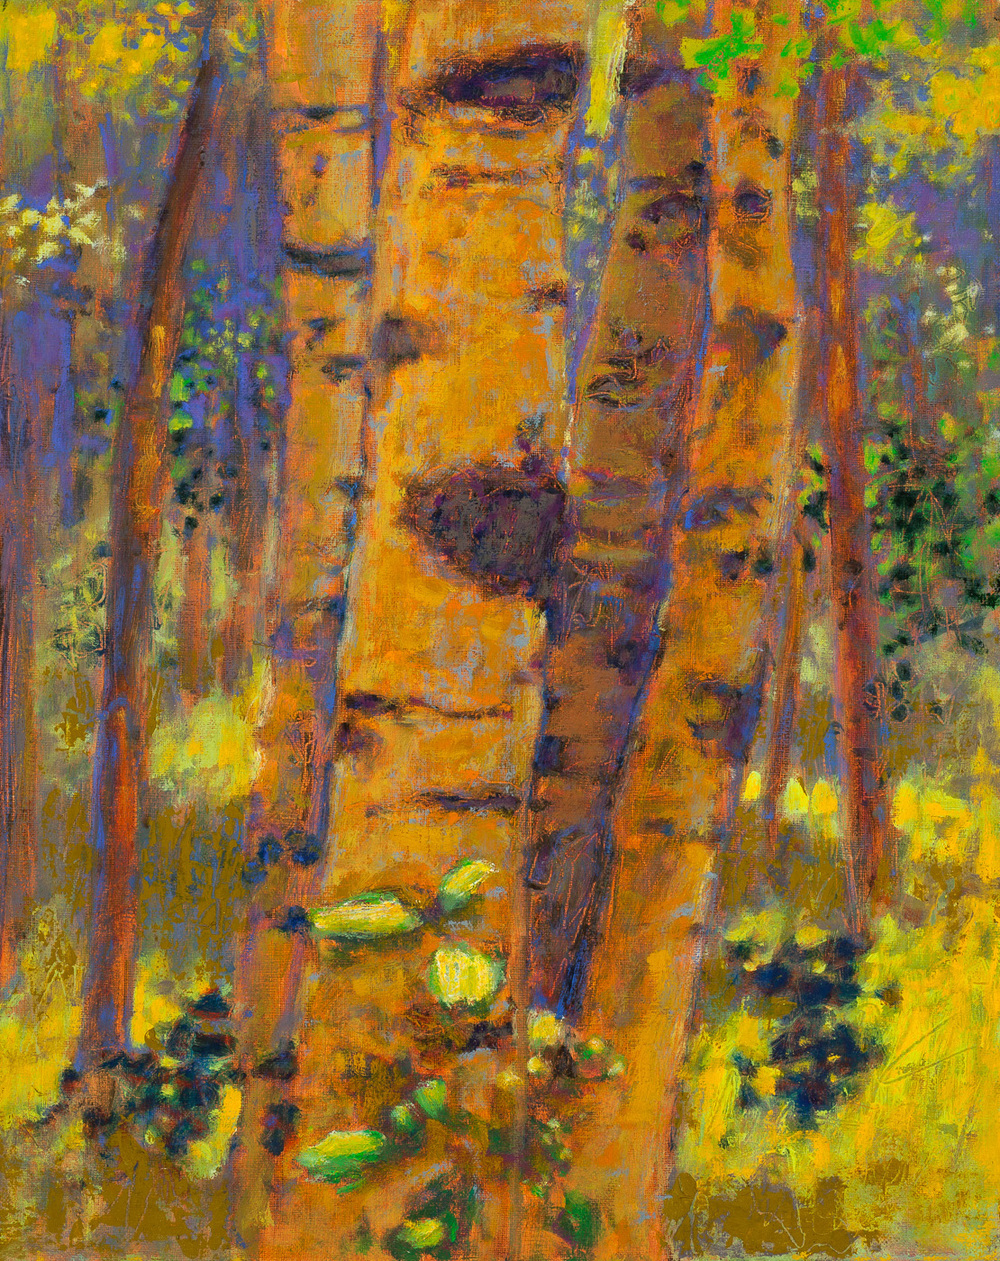 Aspen Huddle   | oil on linen | 15 x 12"